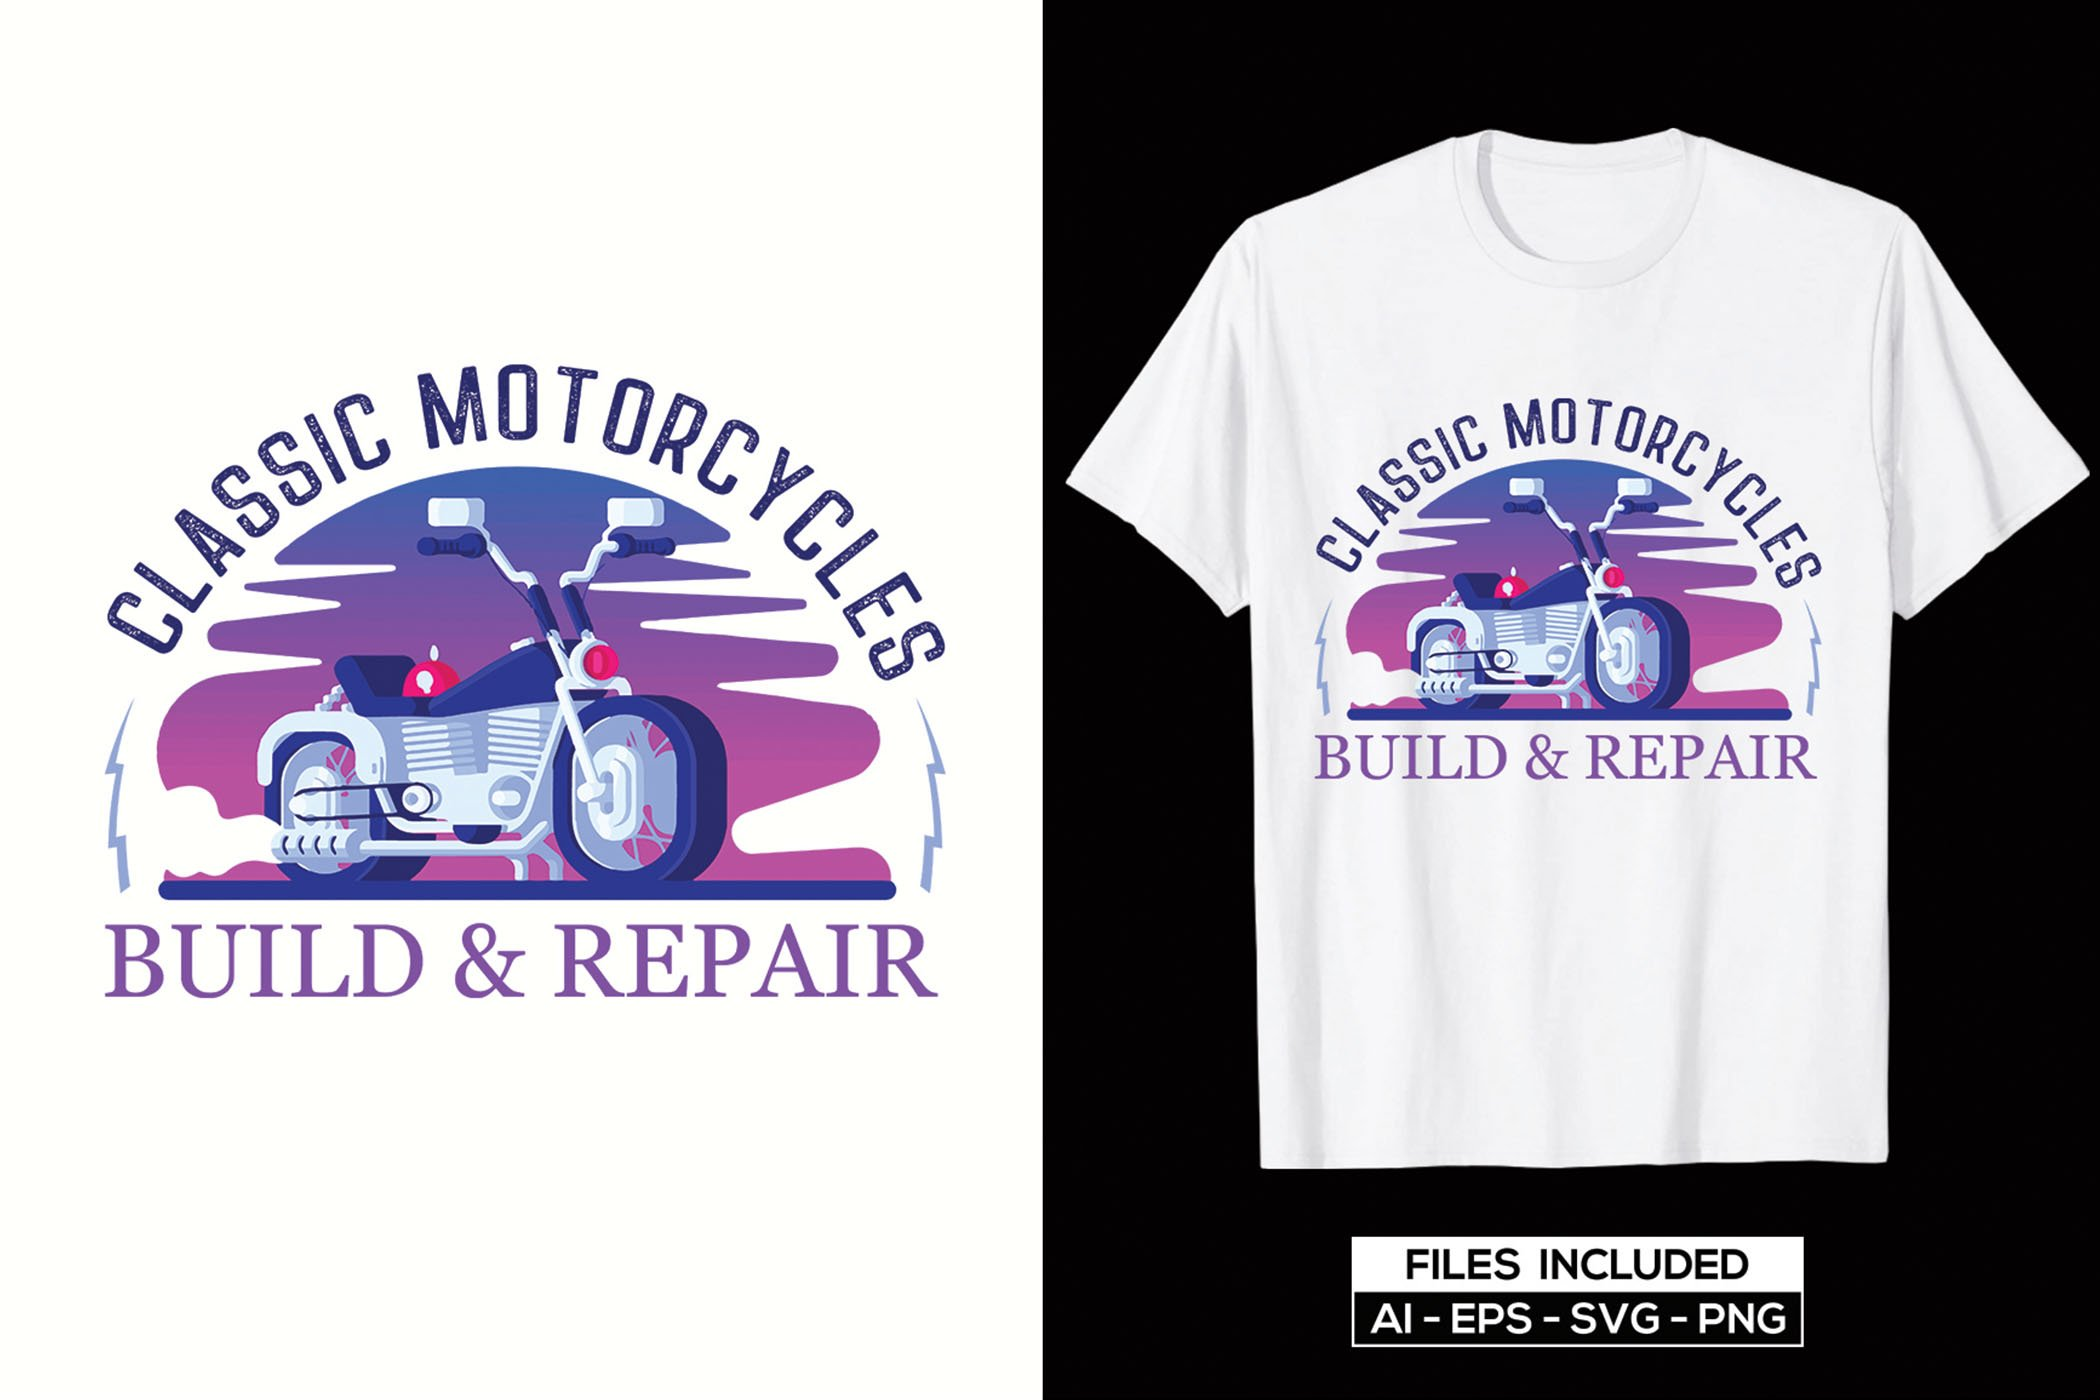 Stylish and high-quality t-shirt with purple illustration of vintage motorcycle.